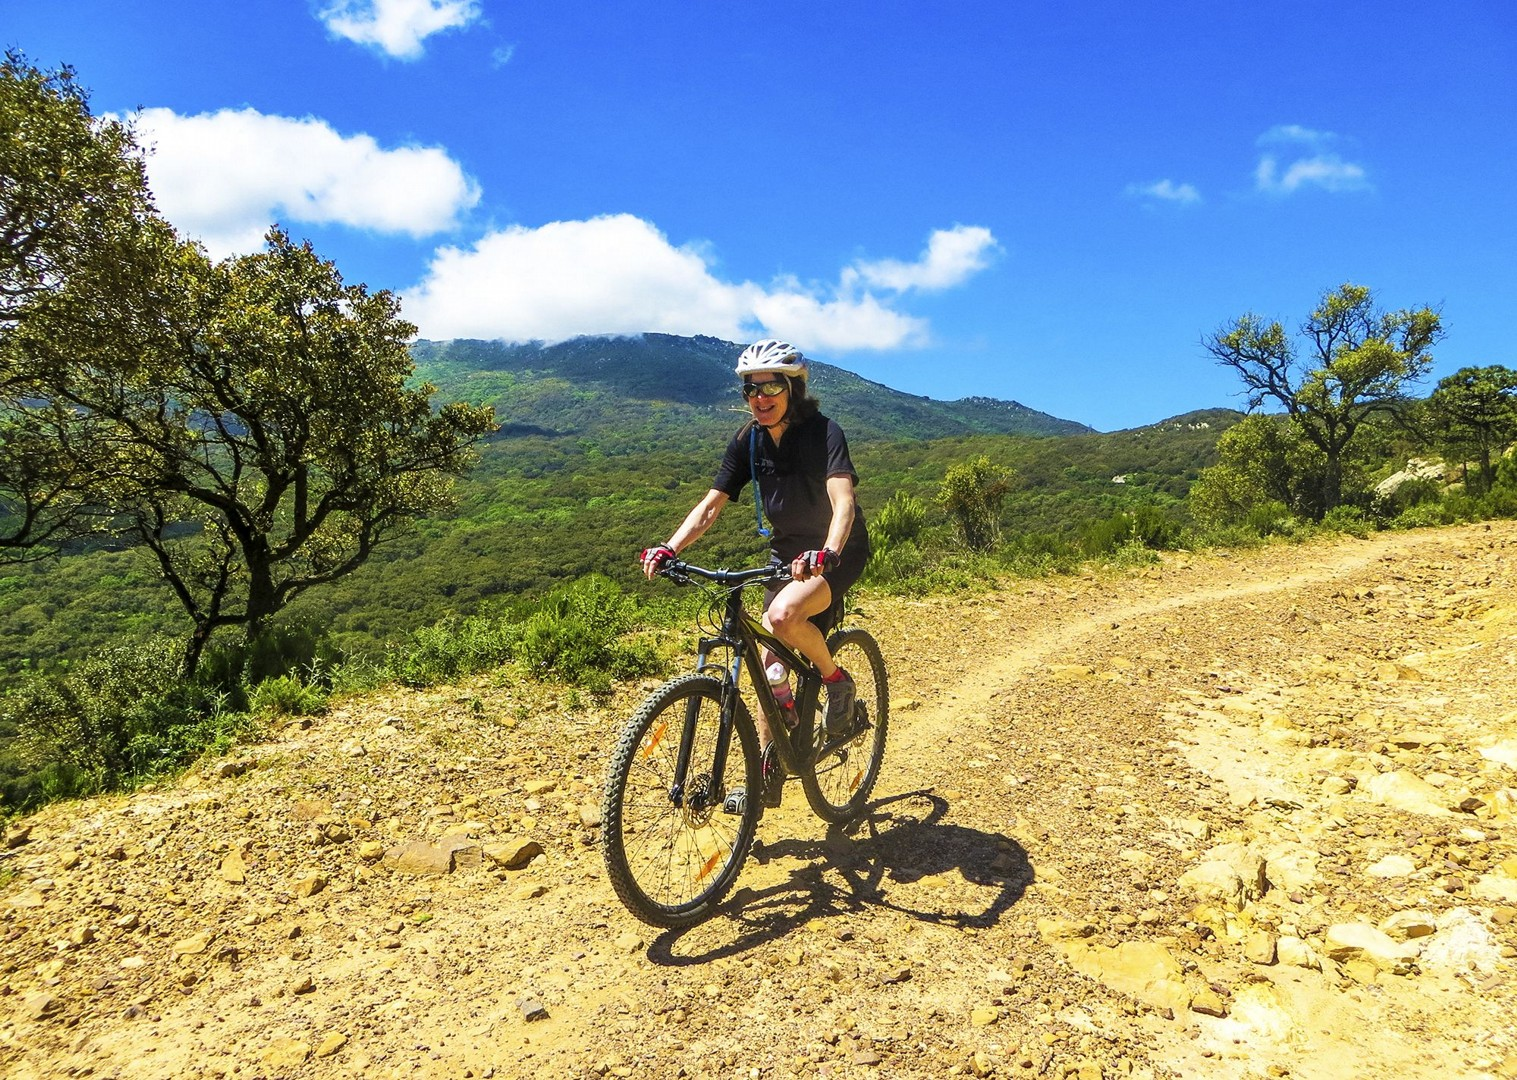 spain-sierras-explorer-mountain-bike-guided-holiday.jpg - Spain - Sierras Explorer - Guided Mountain Bike Holiday - Mountain Biking